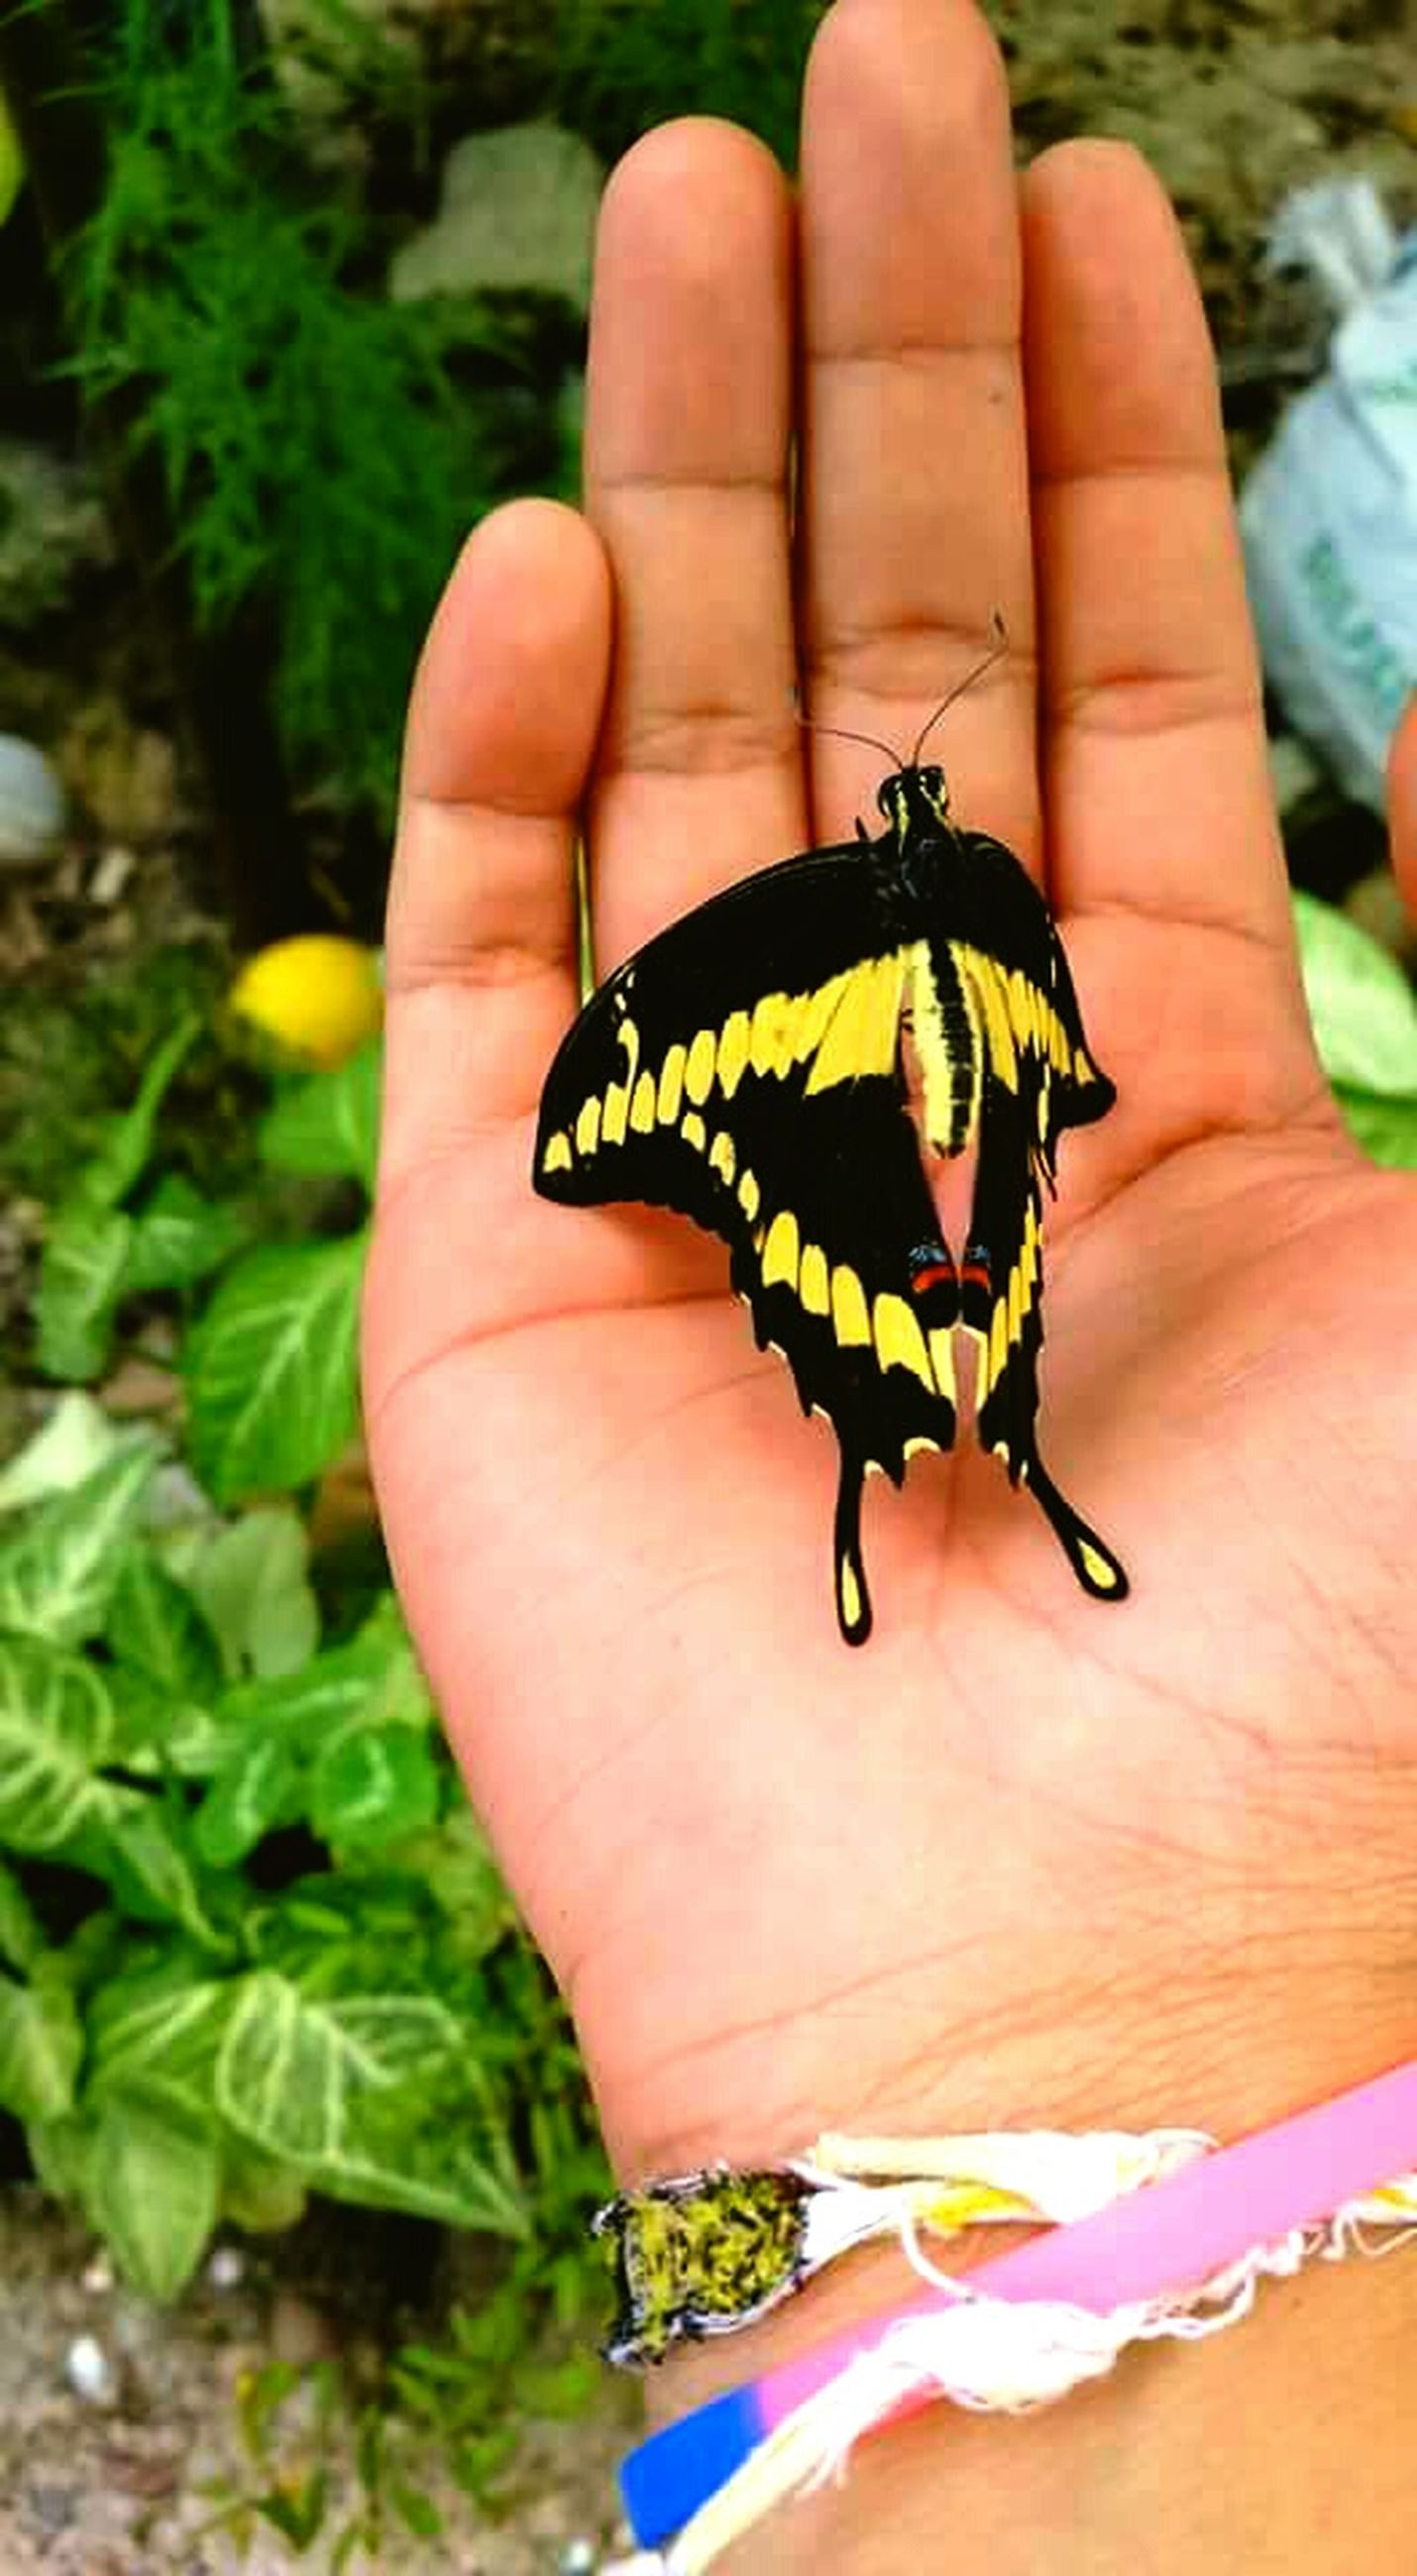 person, insect, part of, one animal, animal themes, animals in the wild, human finger, wildlife, butterfly - insect, close-up, holding, unrecognizable person, butterfly, personal perspective, cropped, focus on foreground, nature